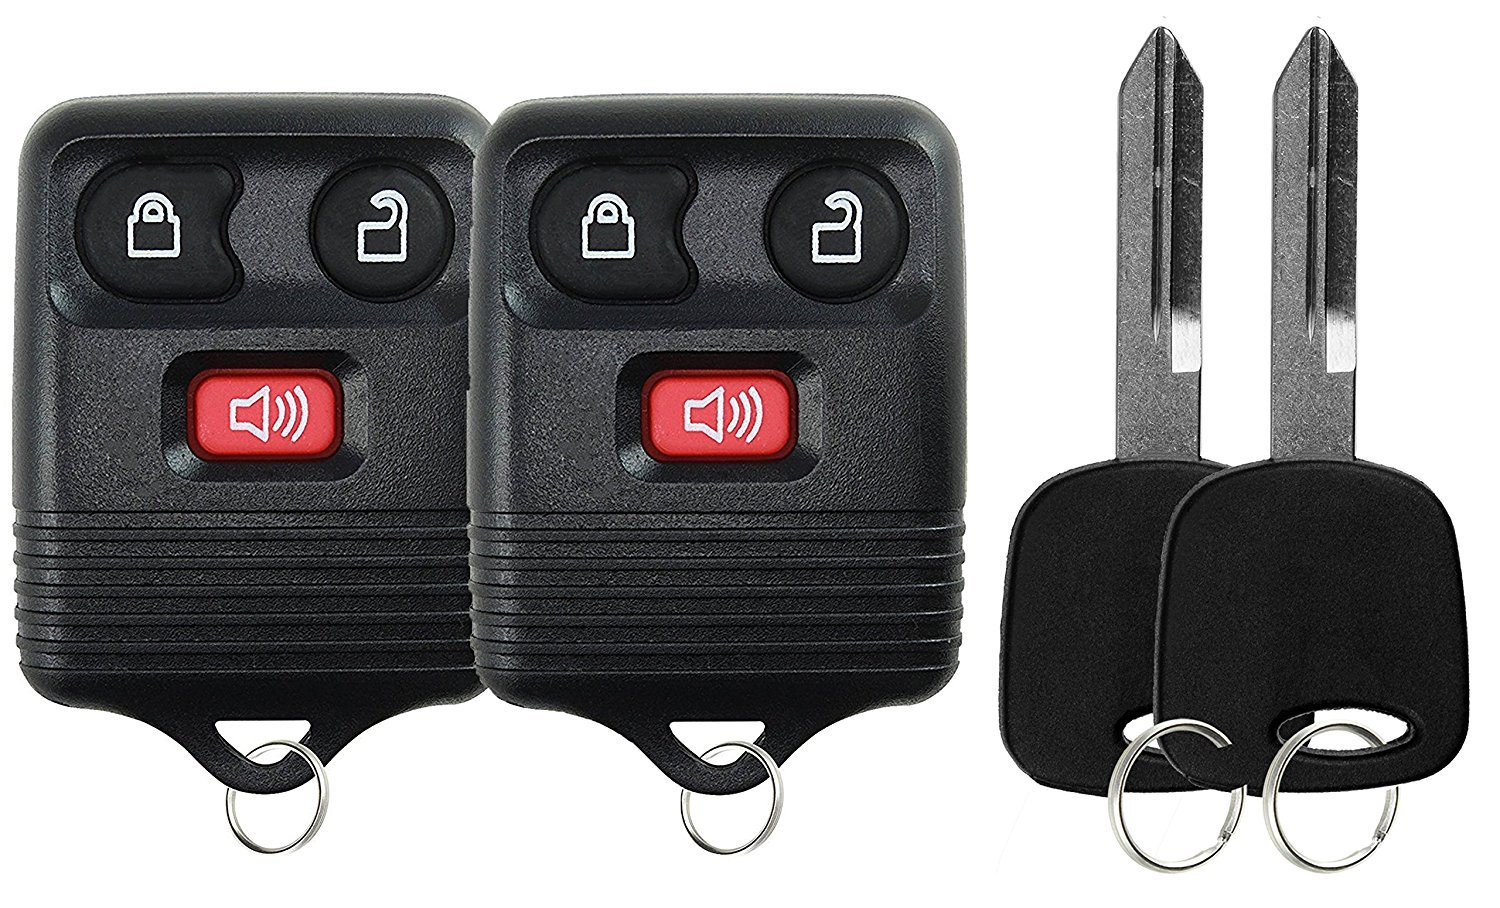 KeylessOption Keyless Entry Remote Control Fob Uncut Blank Car Ignition Key For GQ43VT11T CWTWB1U345 Pack of 2